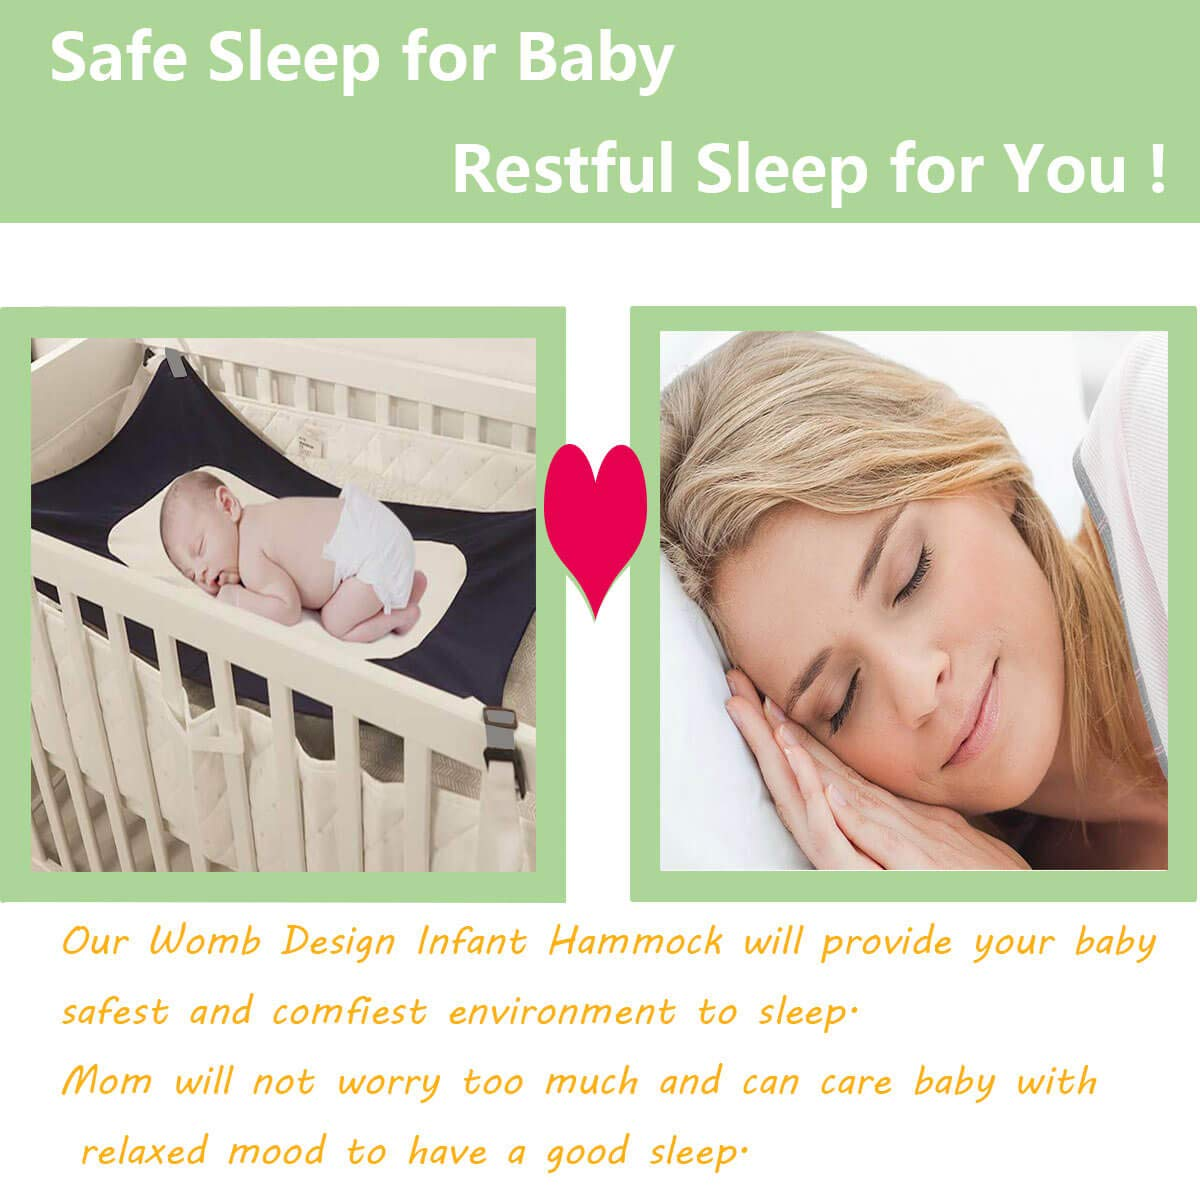 Baby Hammock for Crib Mimics Womb Provide The Perfect Transition to Crib for Newborn Infant Safe Sleep as Baby Shower Gift